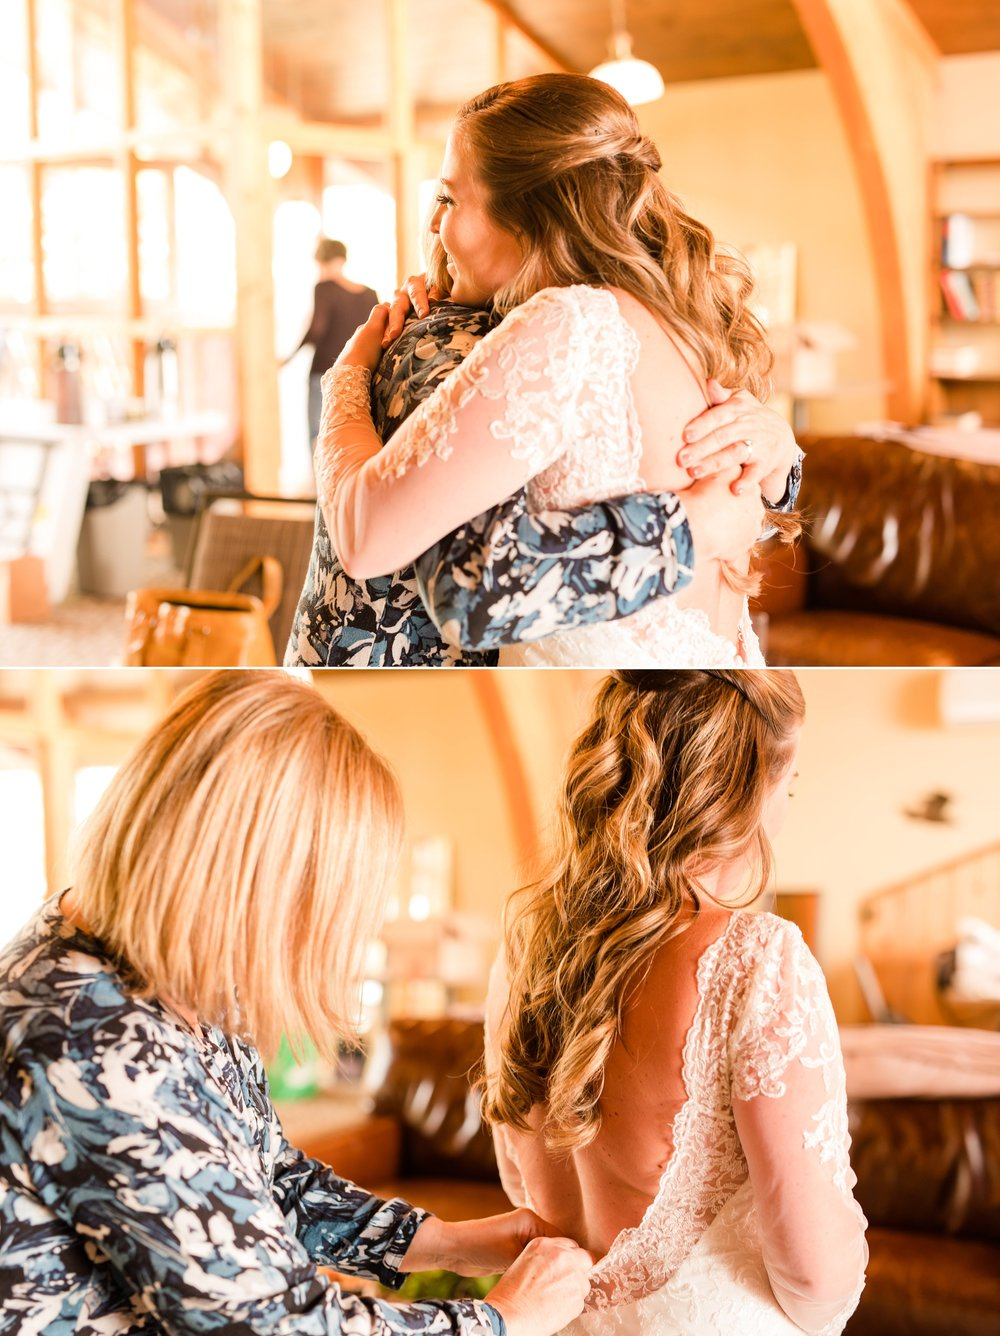 AmberLangerudPhotography_Fair Hills Resort Lakeside Wedding in Minnesota_3415.jpg